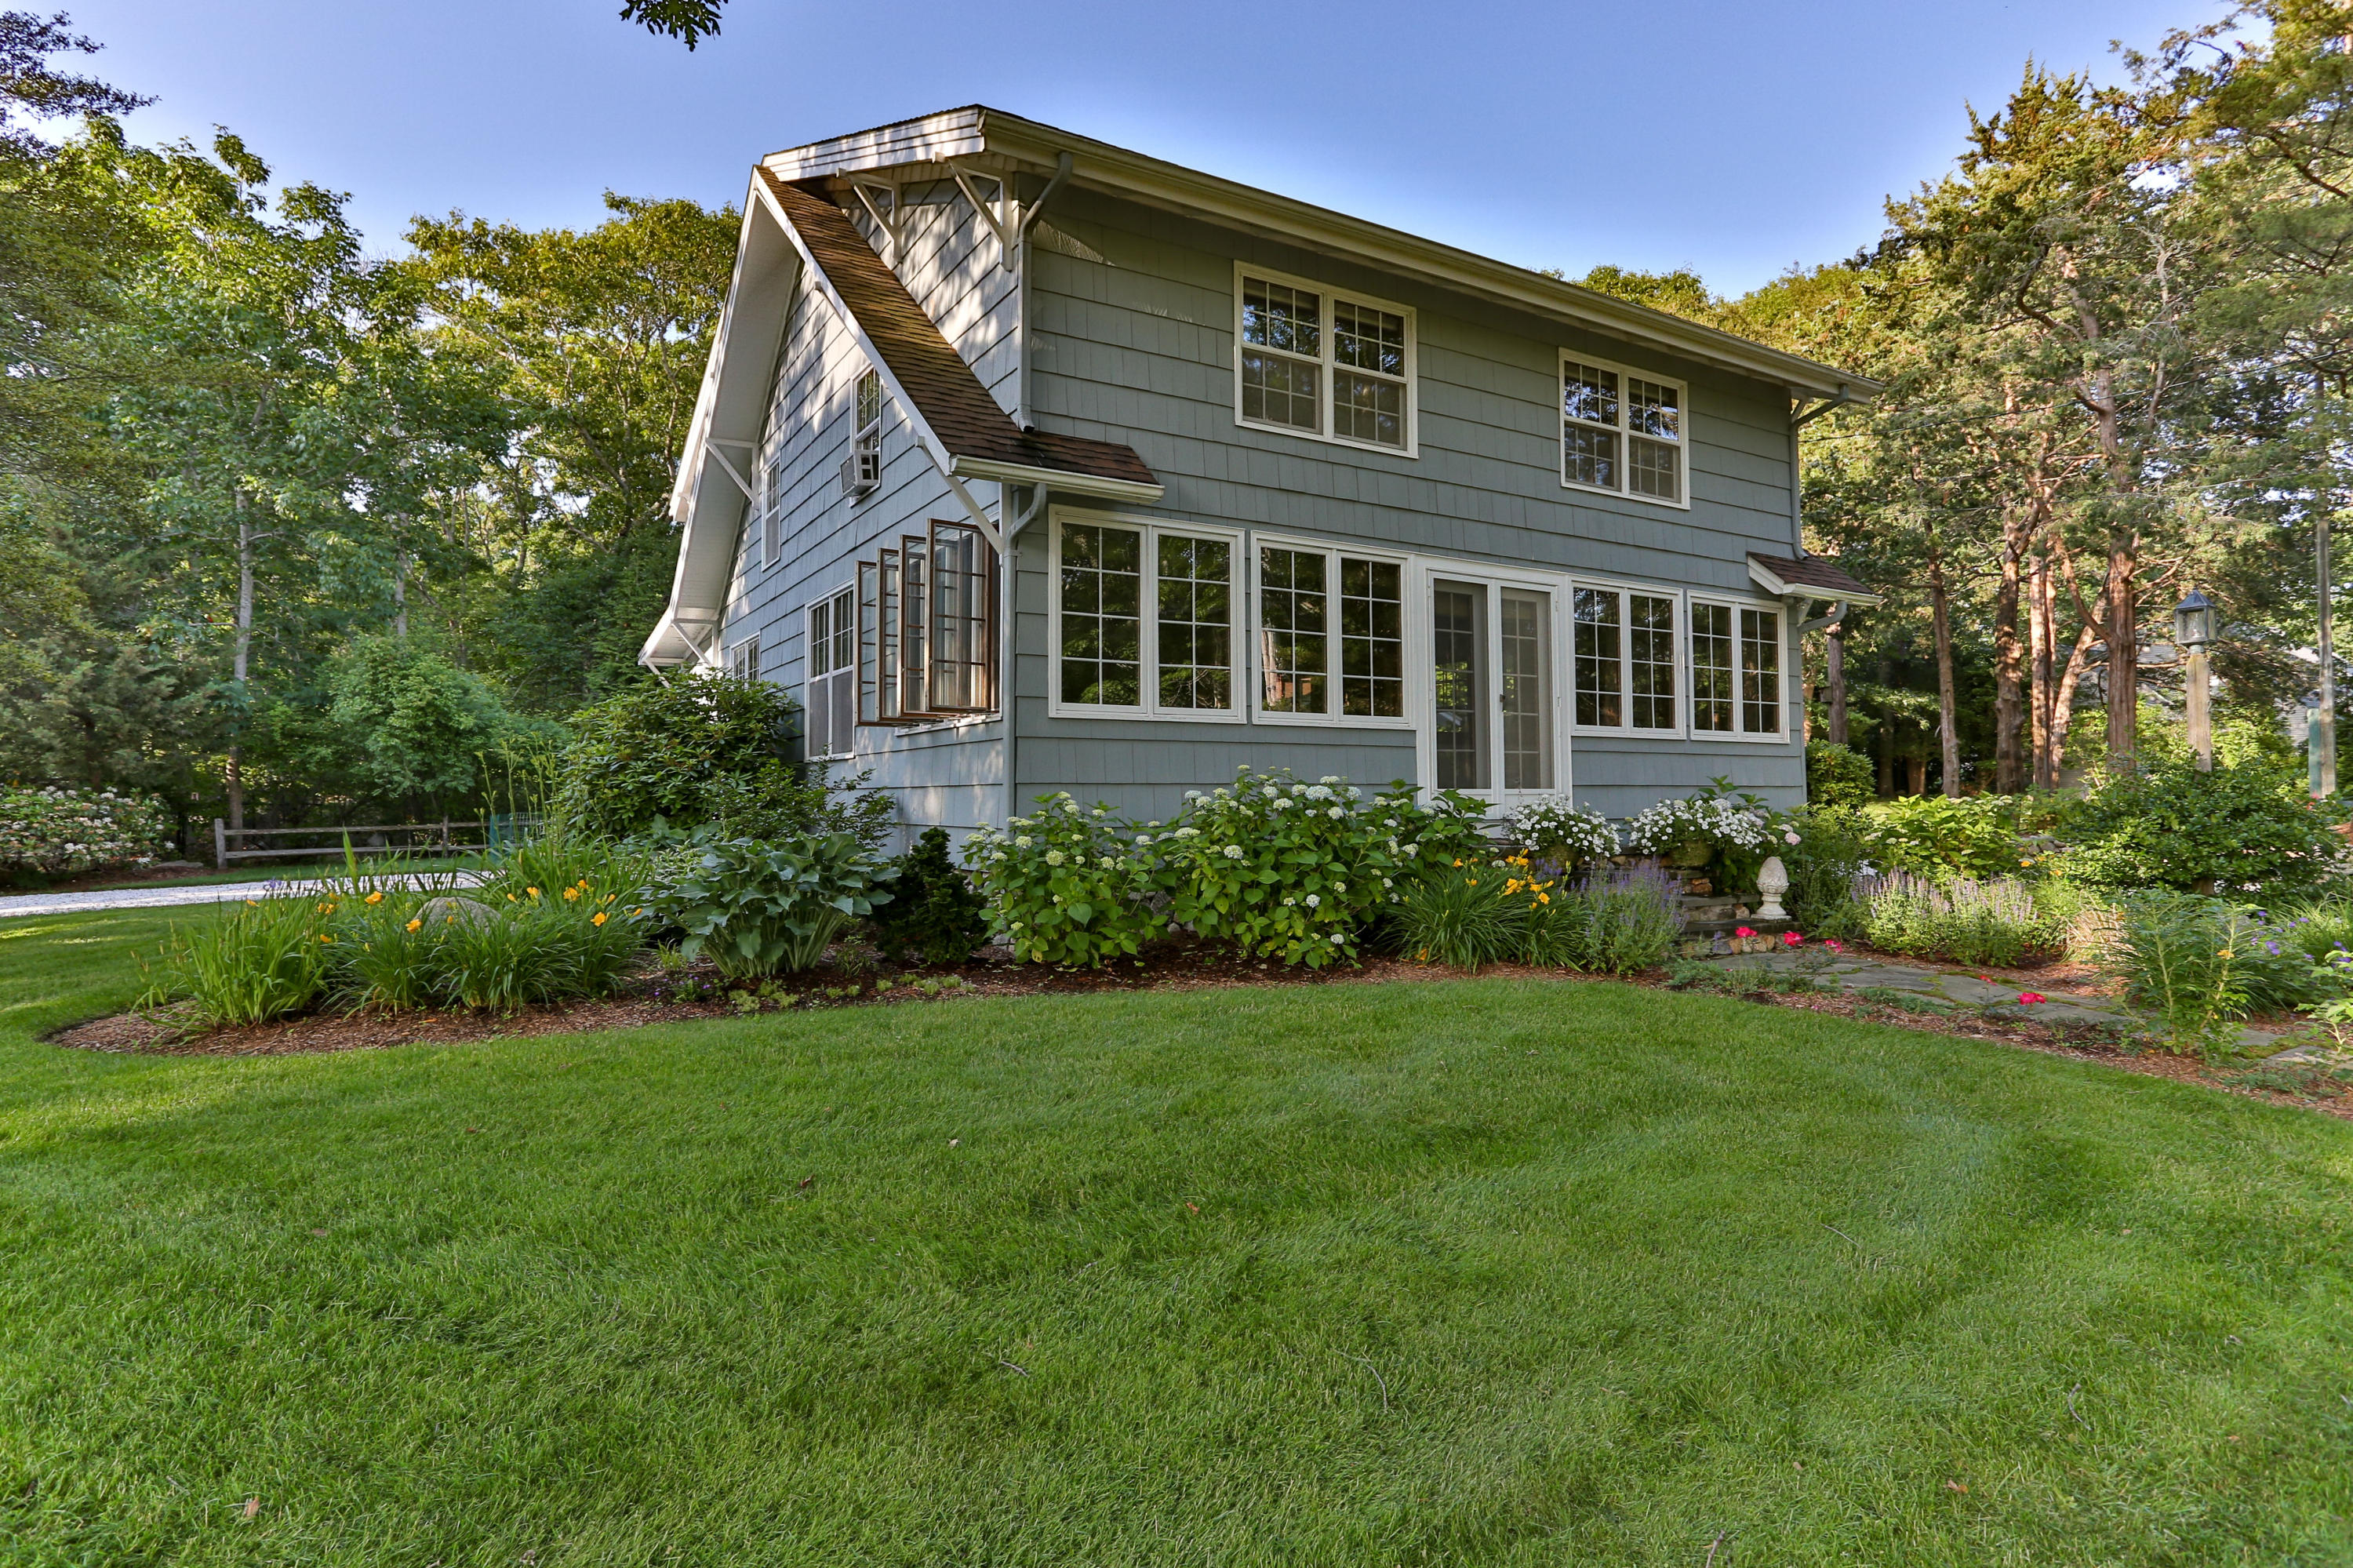 Homes For Sale in West Falmouth, MA | William Raveis Real Estate